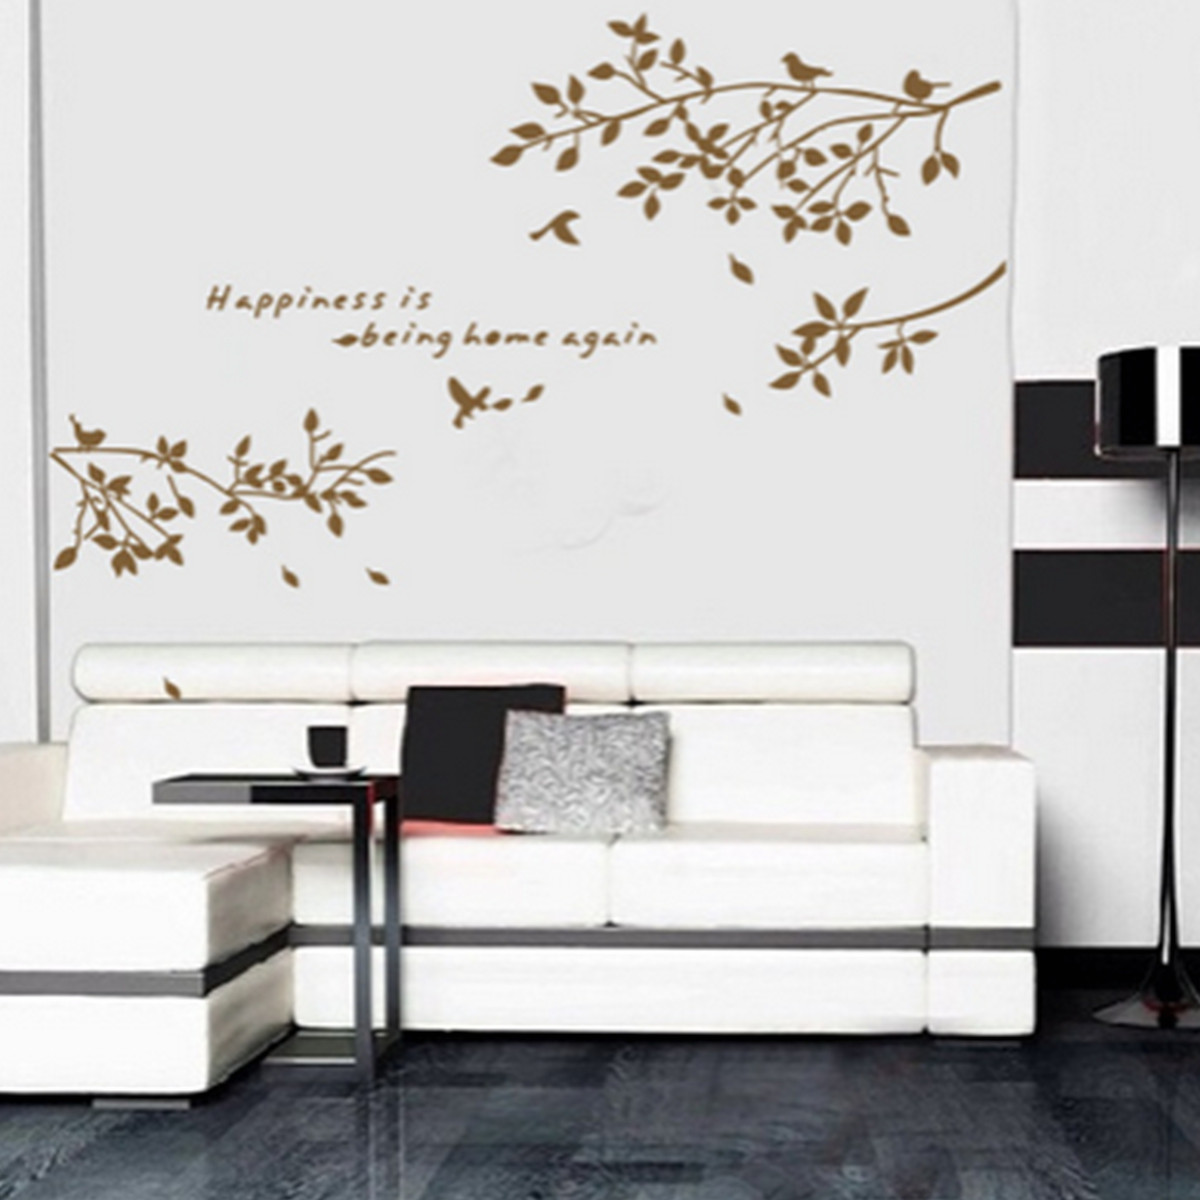 Best ideas about Wall Decals For Living Room . Save or Pin Black Removable Tree Branches Birds Vinyl Wall Sticker Now.